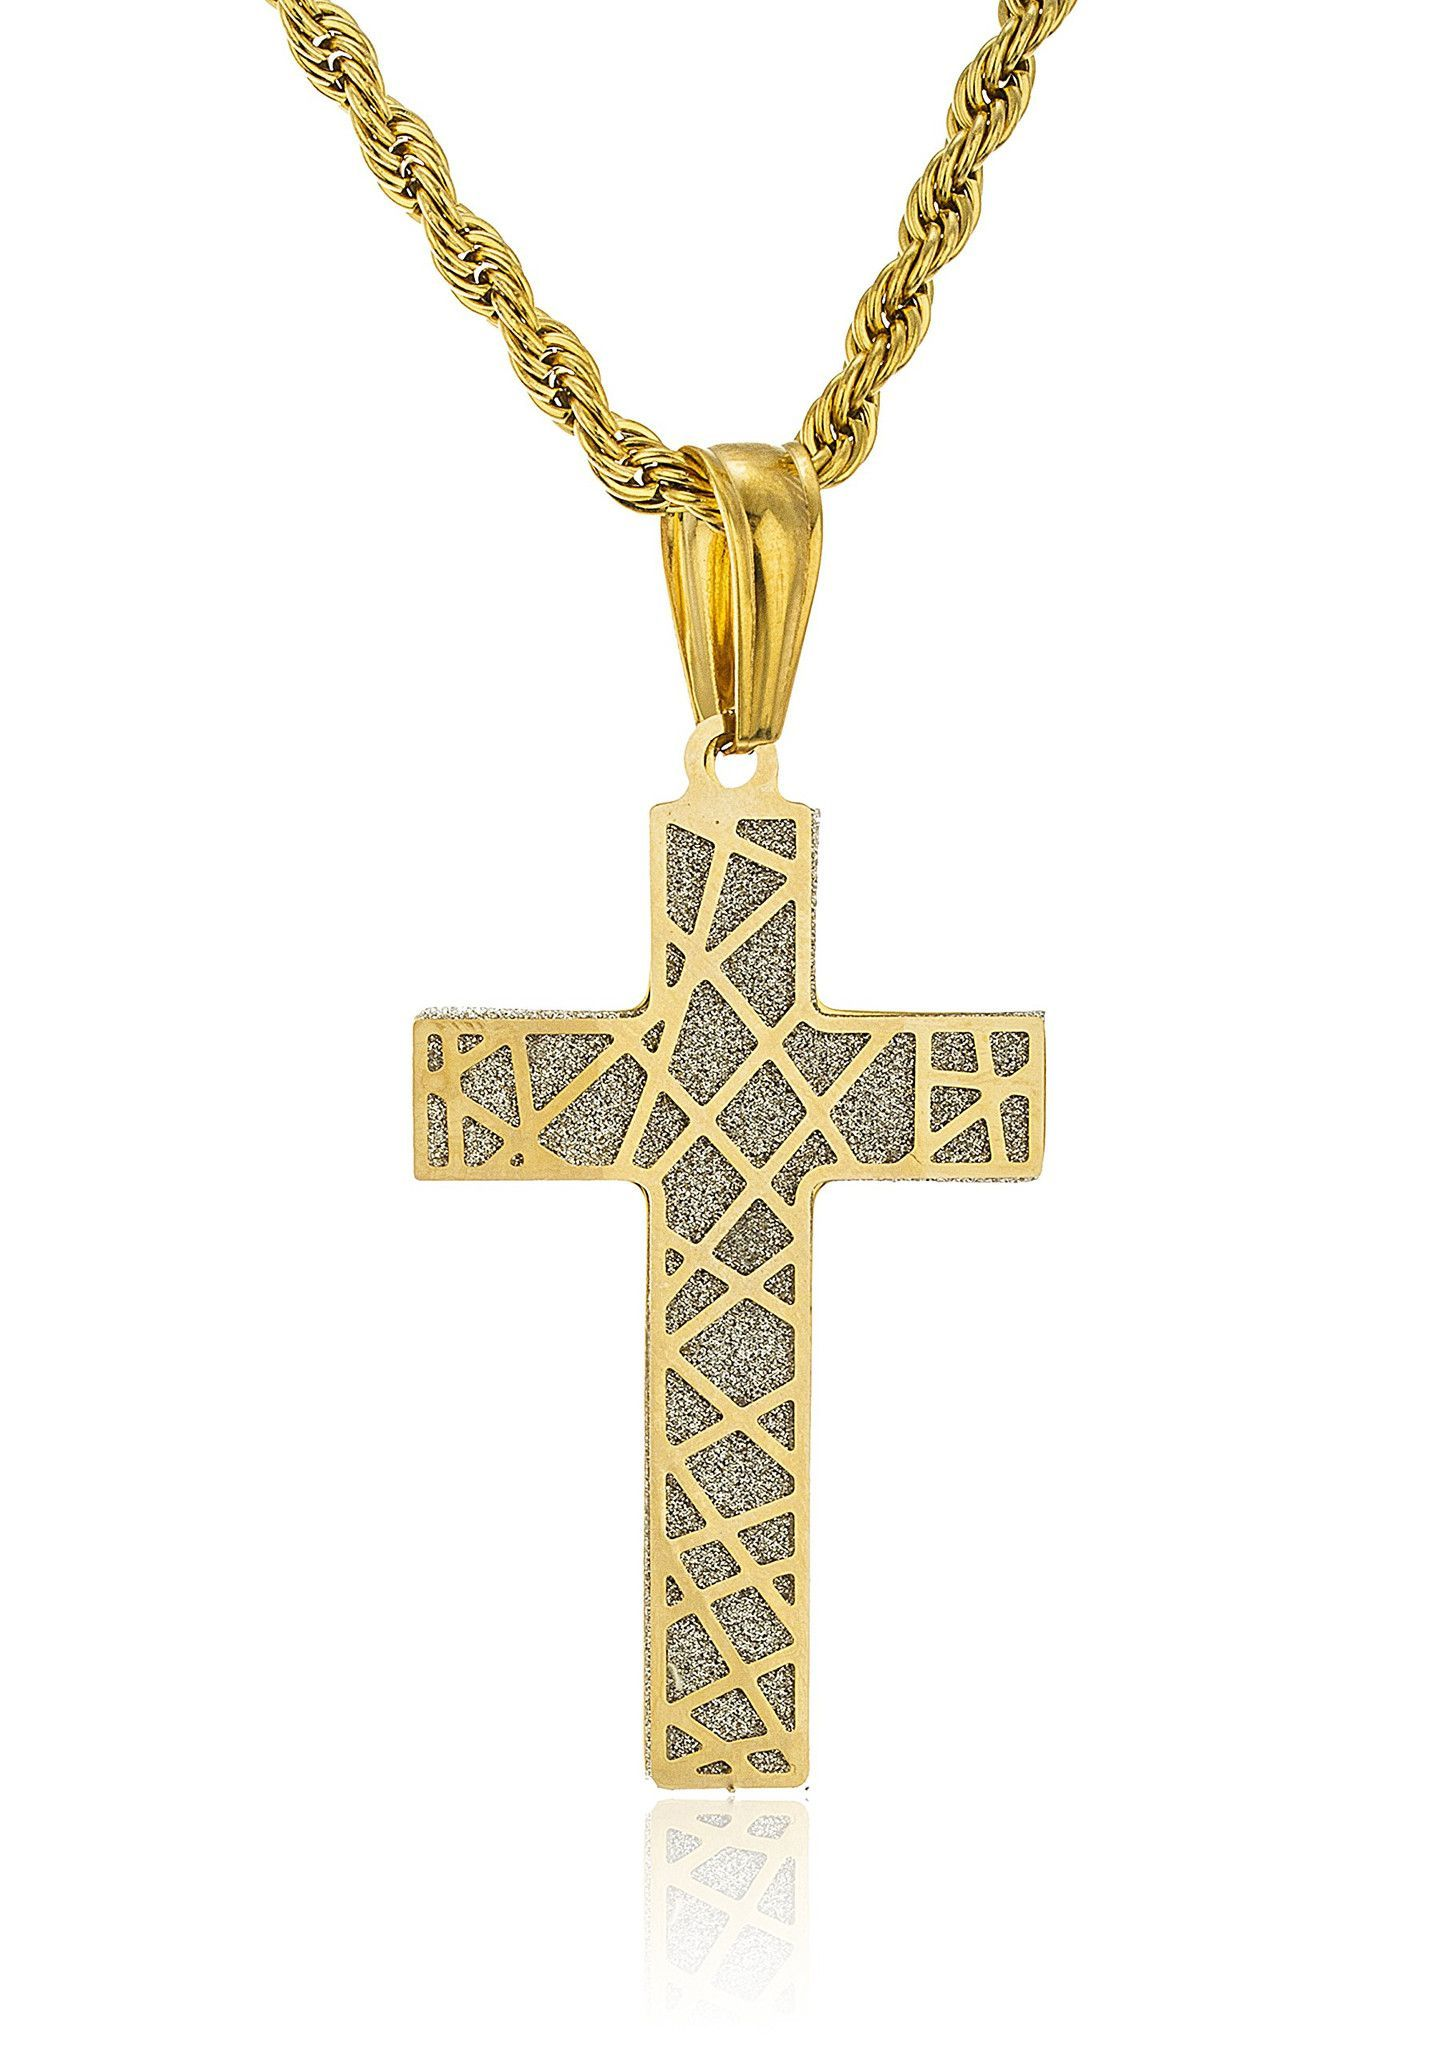 Stainless steel goldtone cross design with sandblast pendant and a